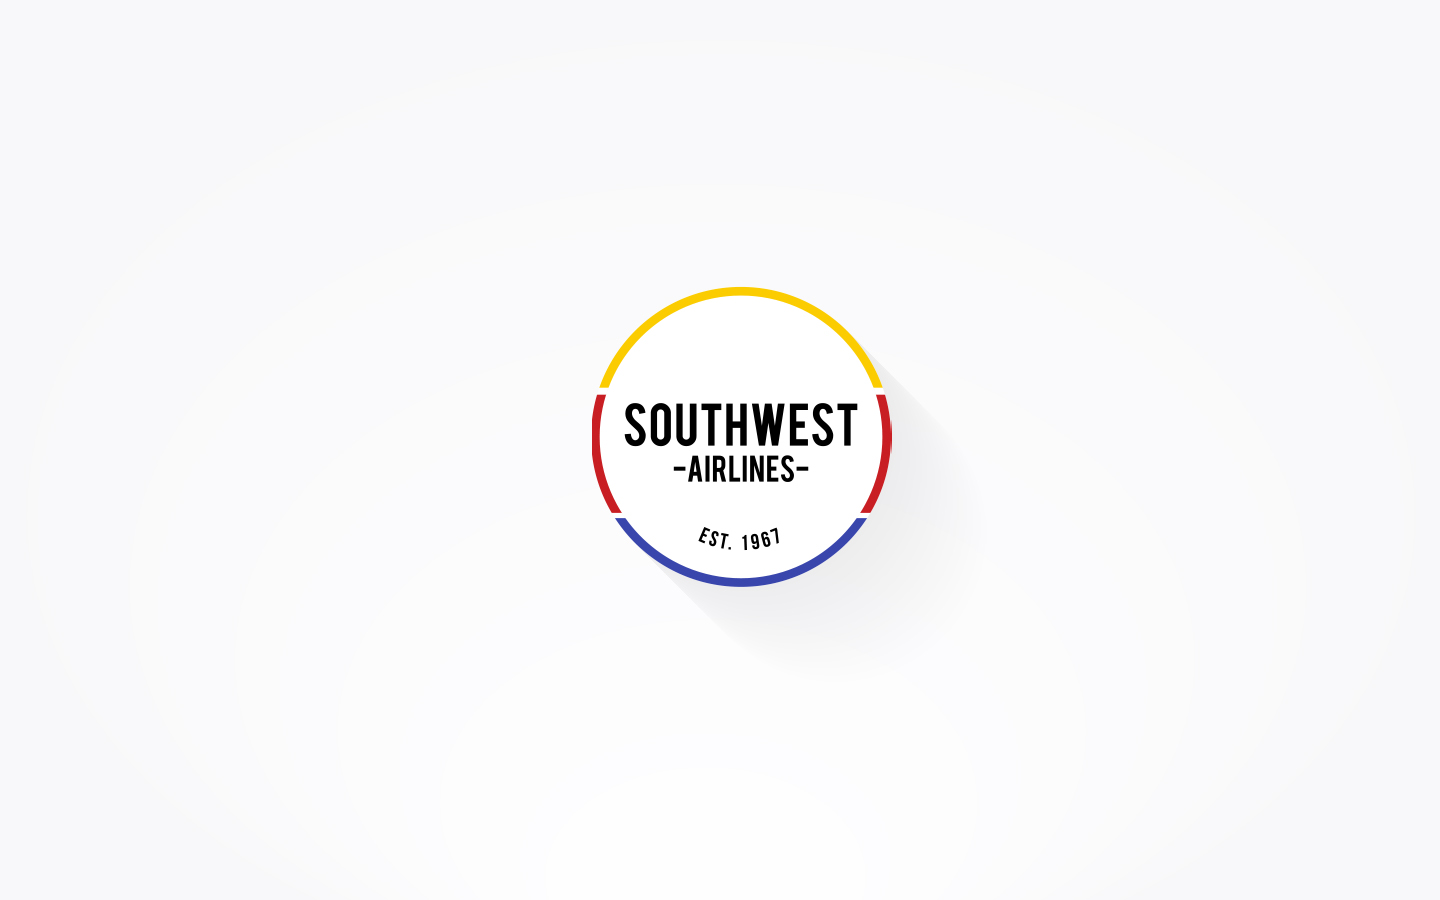 southwest-airlines-logo-02.jpg